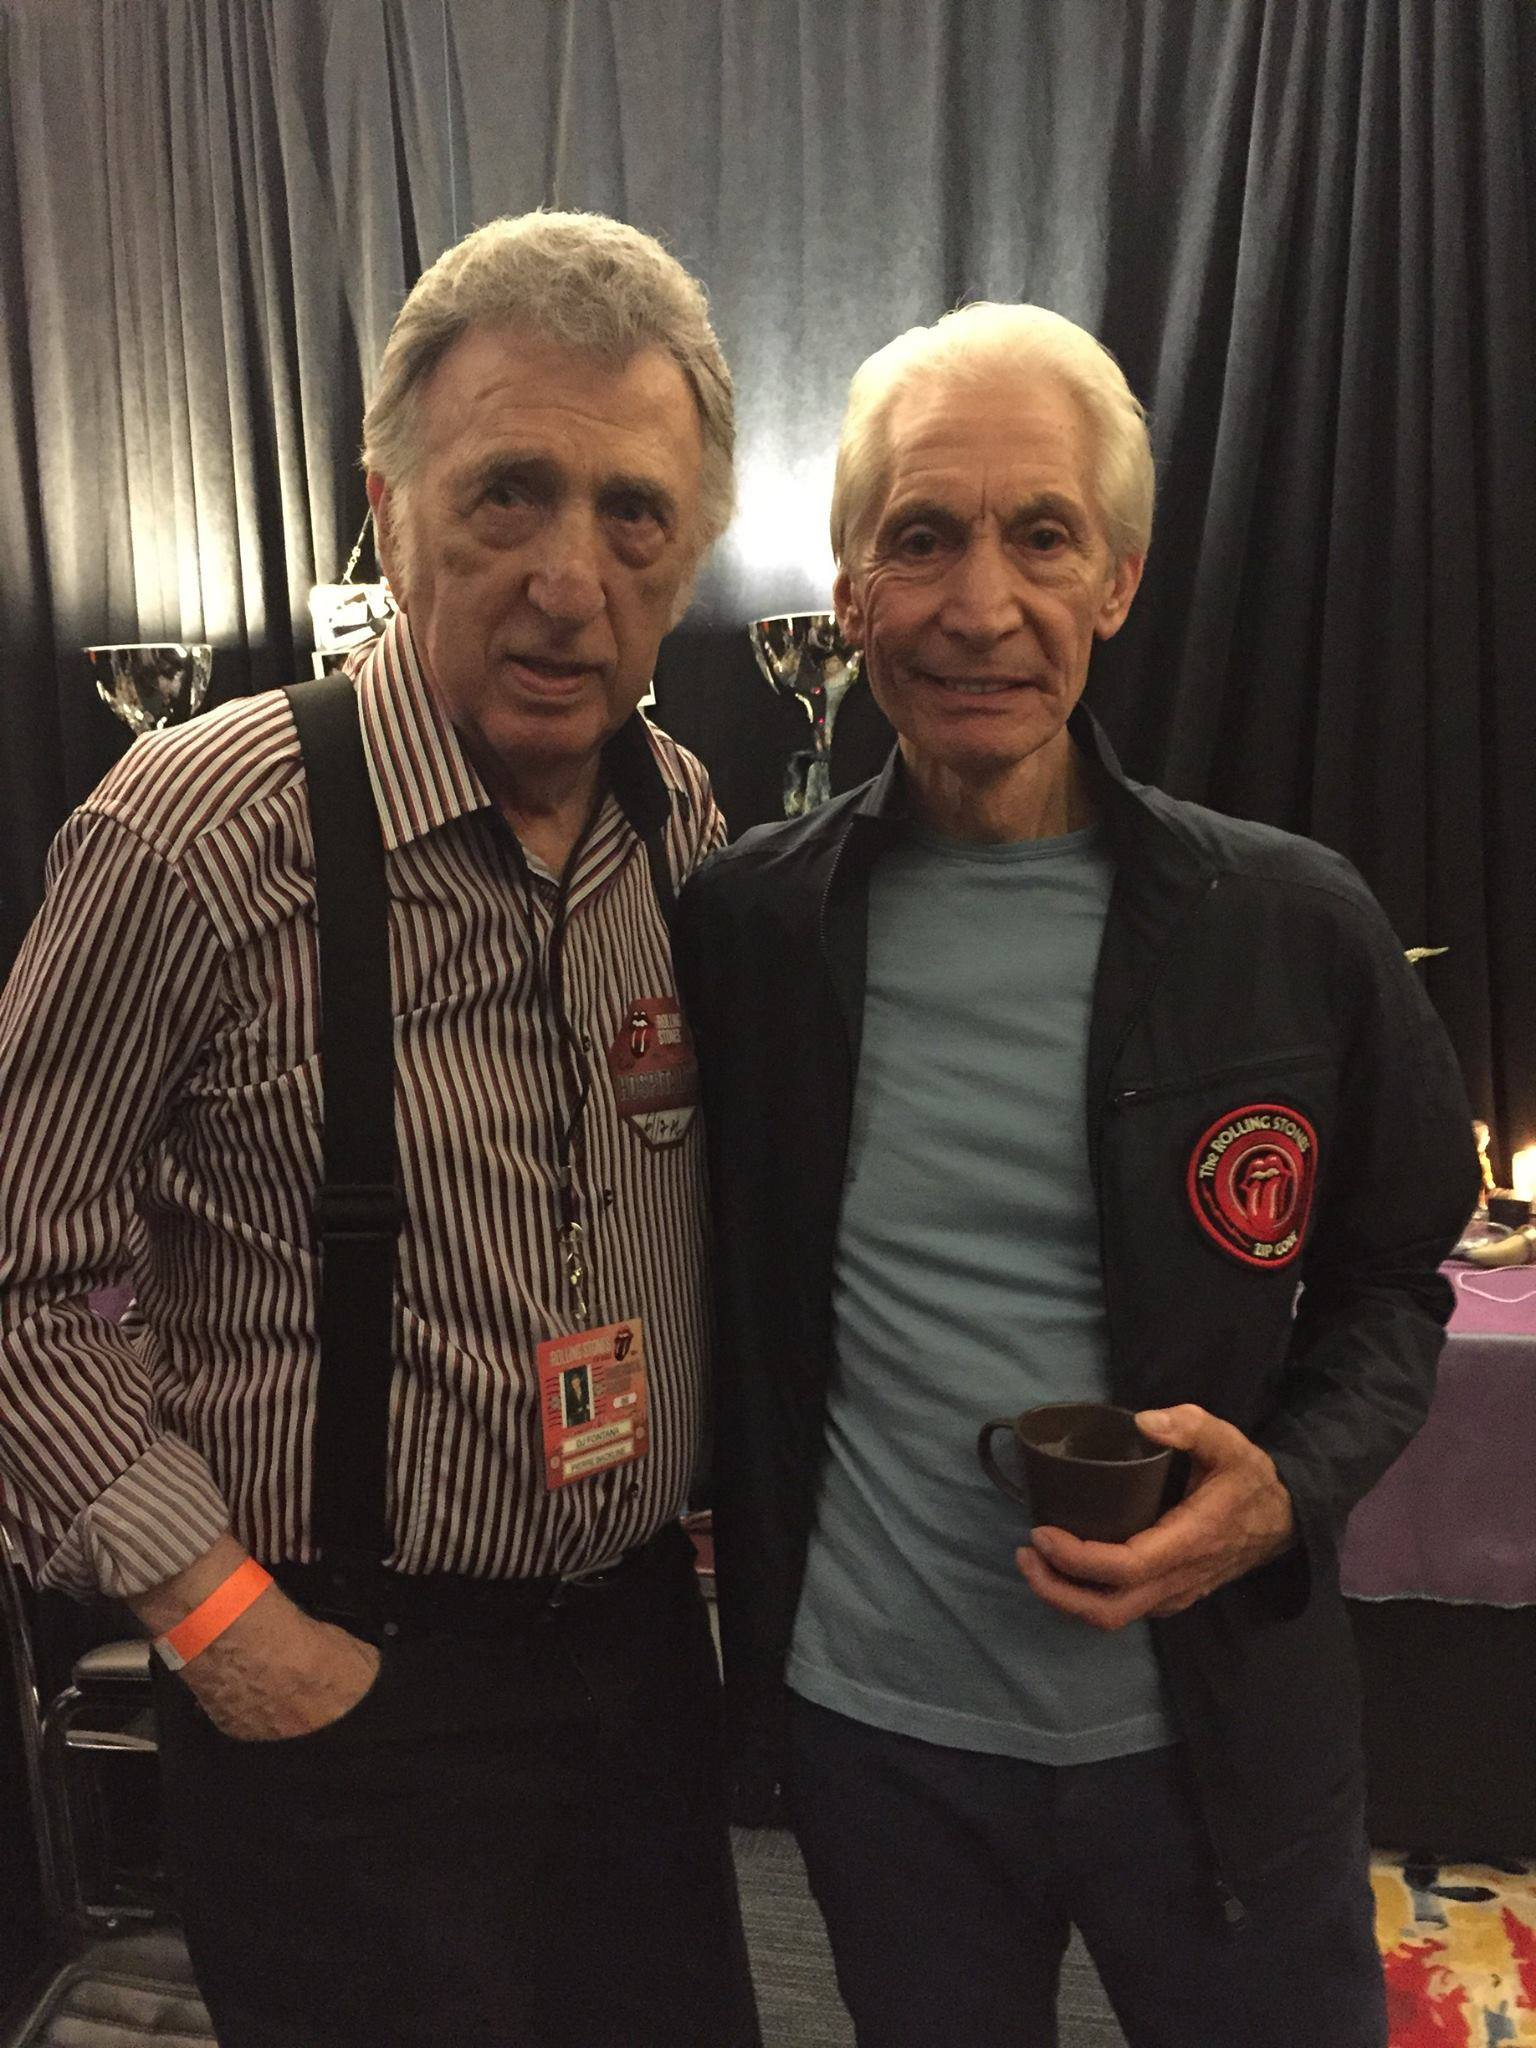 DJ and Charlie Watts in July 2015